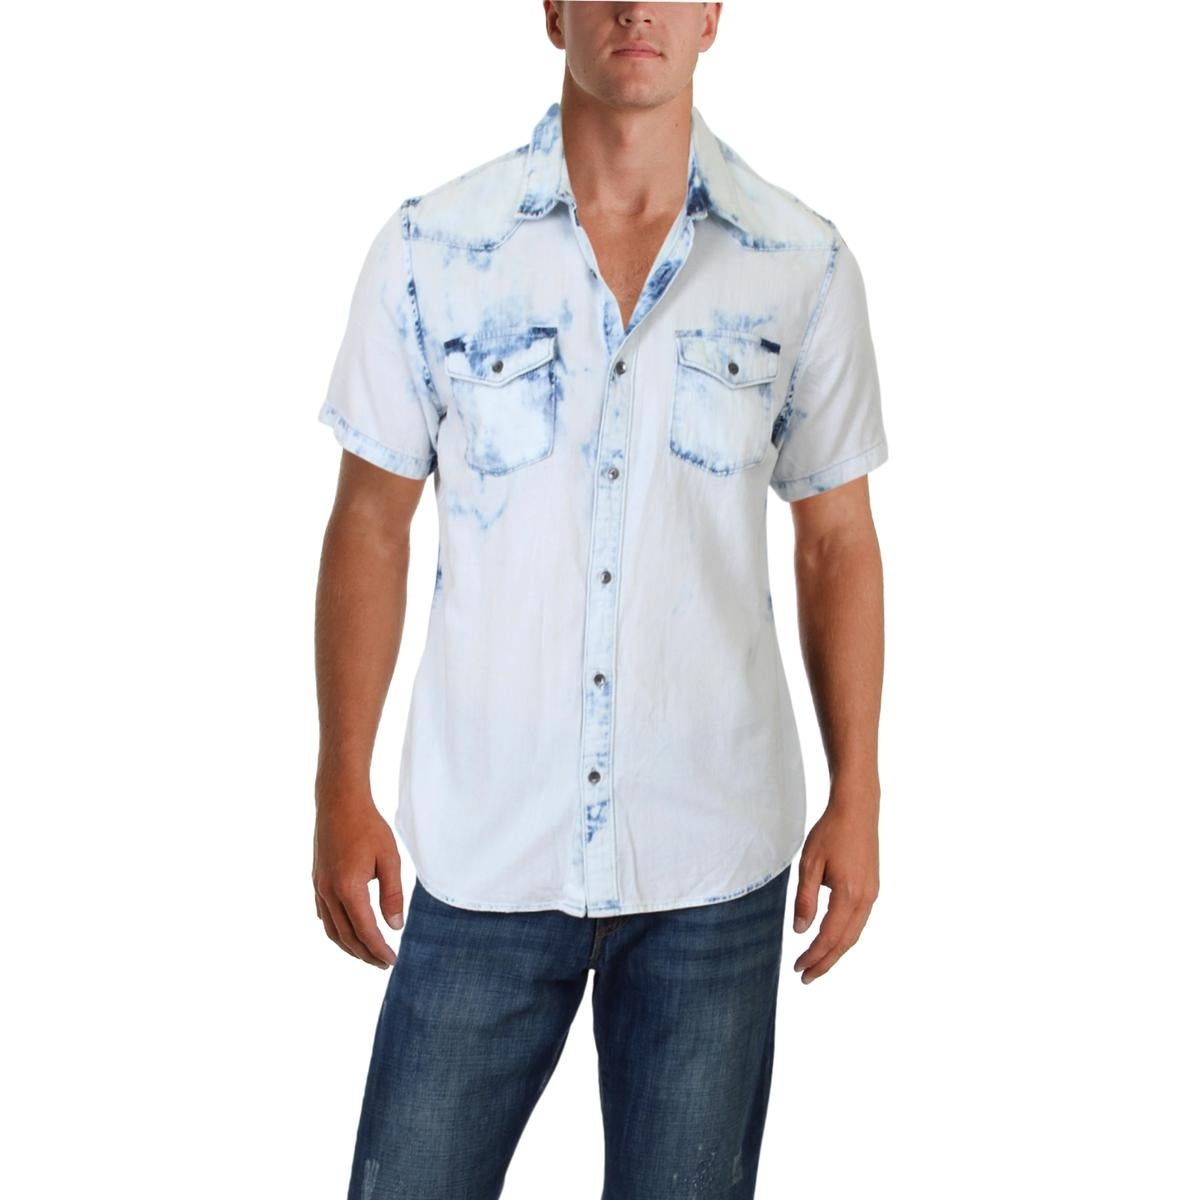 b2c80734d Guess Slim Fit Denim Shirt - DREAMWORKS